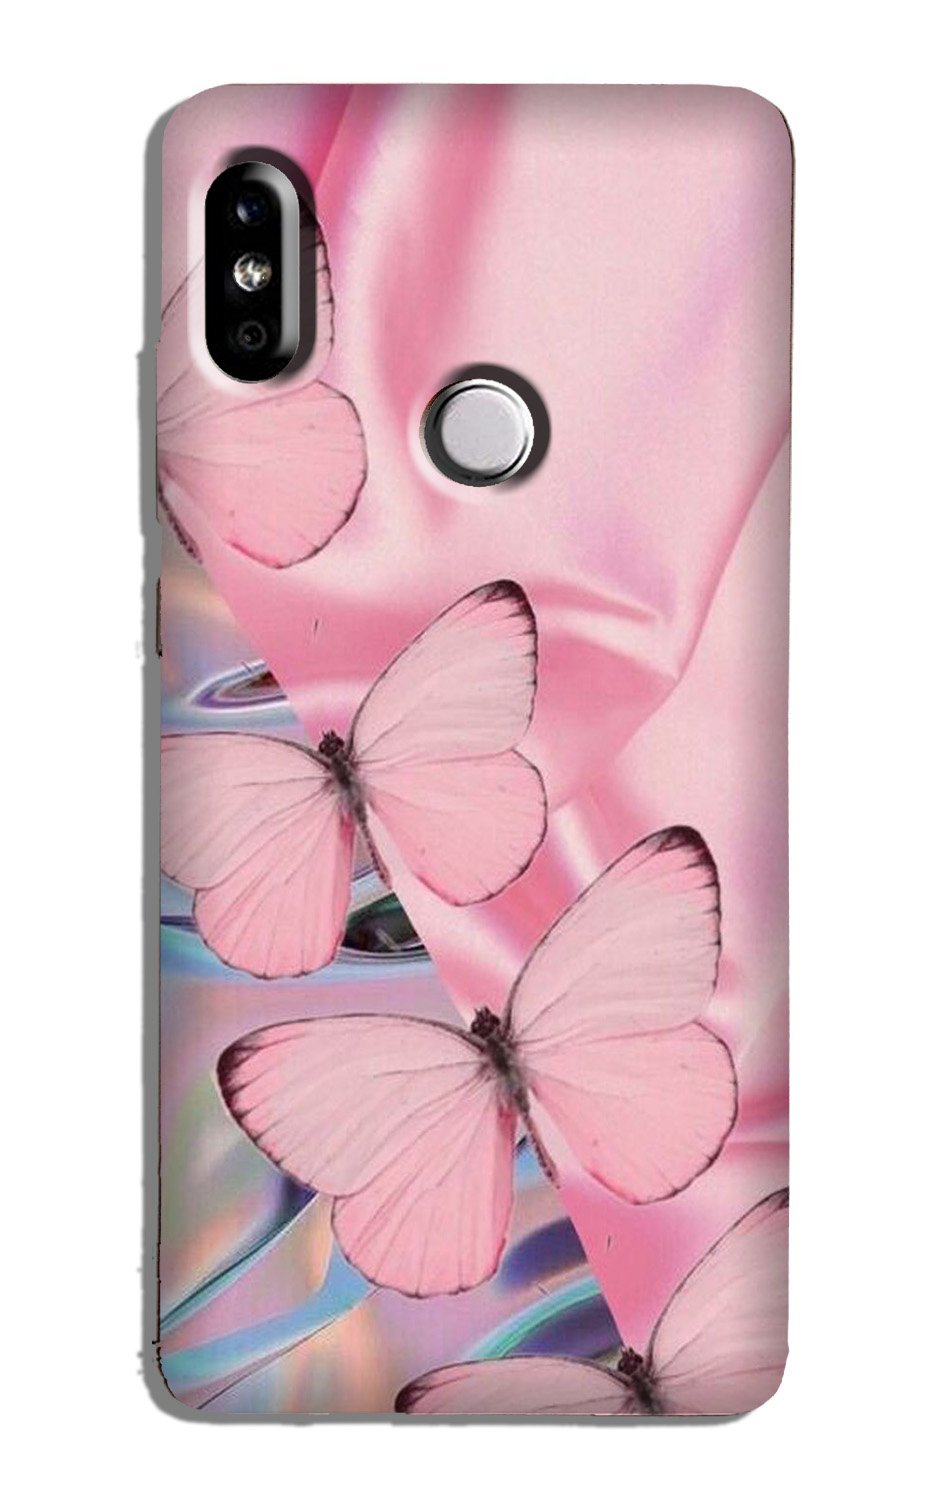 Butterflies Case for Redmi Note 5 Pro